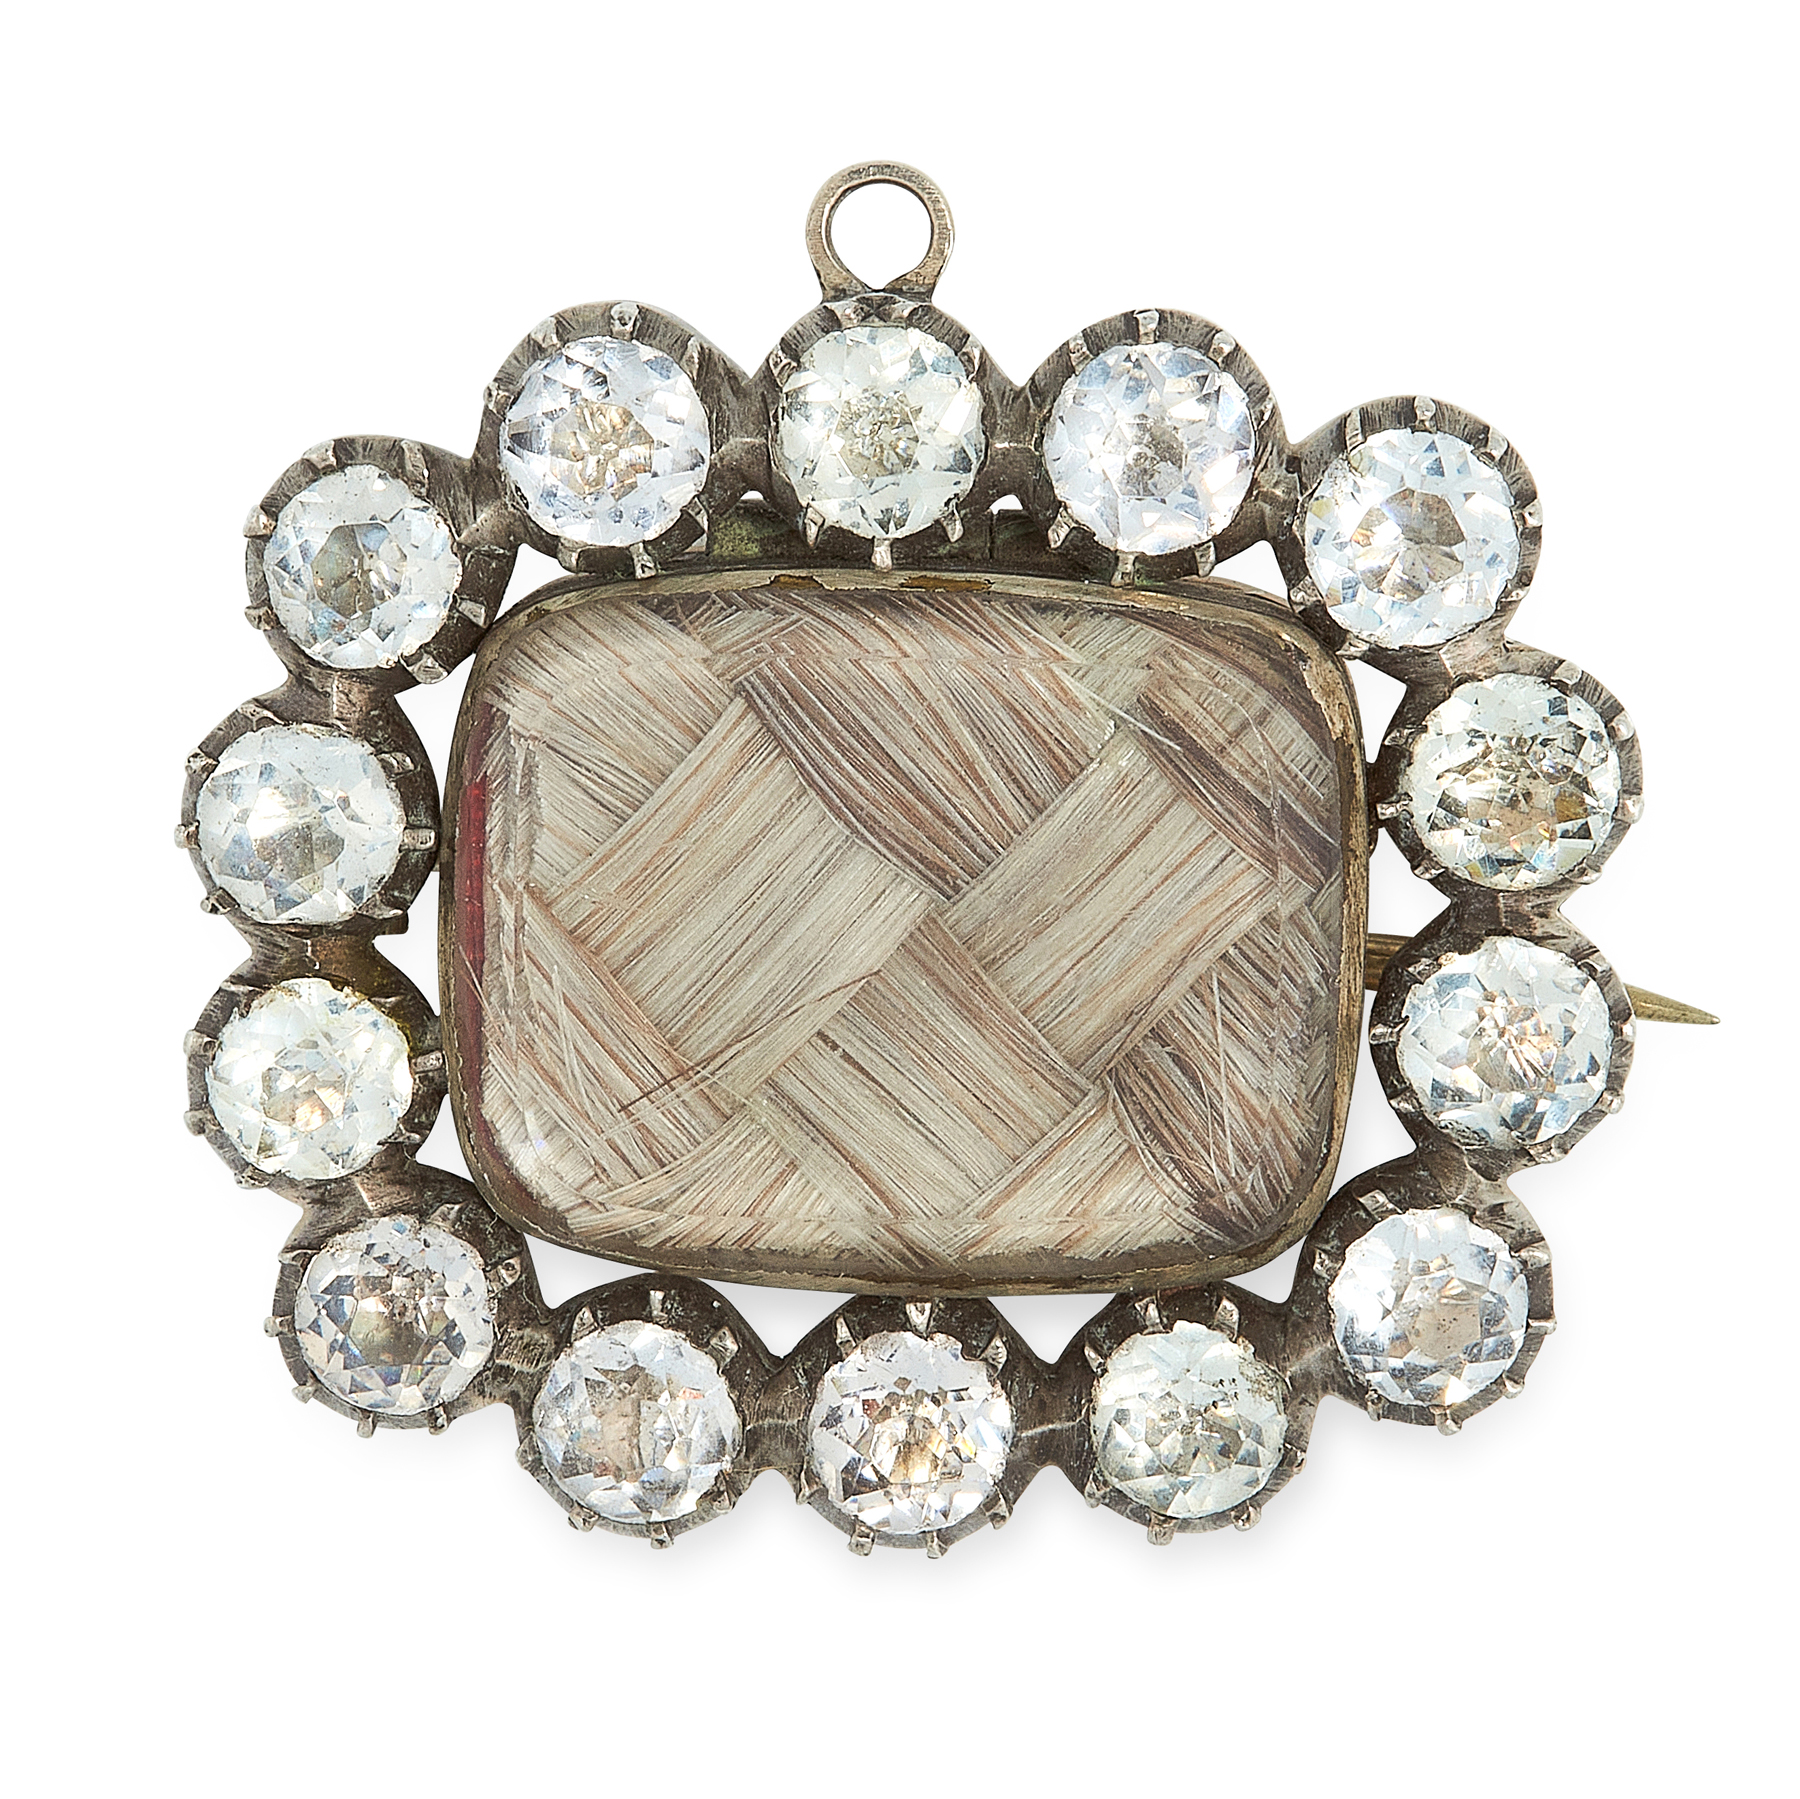 AN ANTIQUE PASTE AND HAIRWORK MOURNING BROOCH, 19TH CENTURY in silver, set with a central panel of